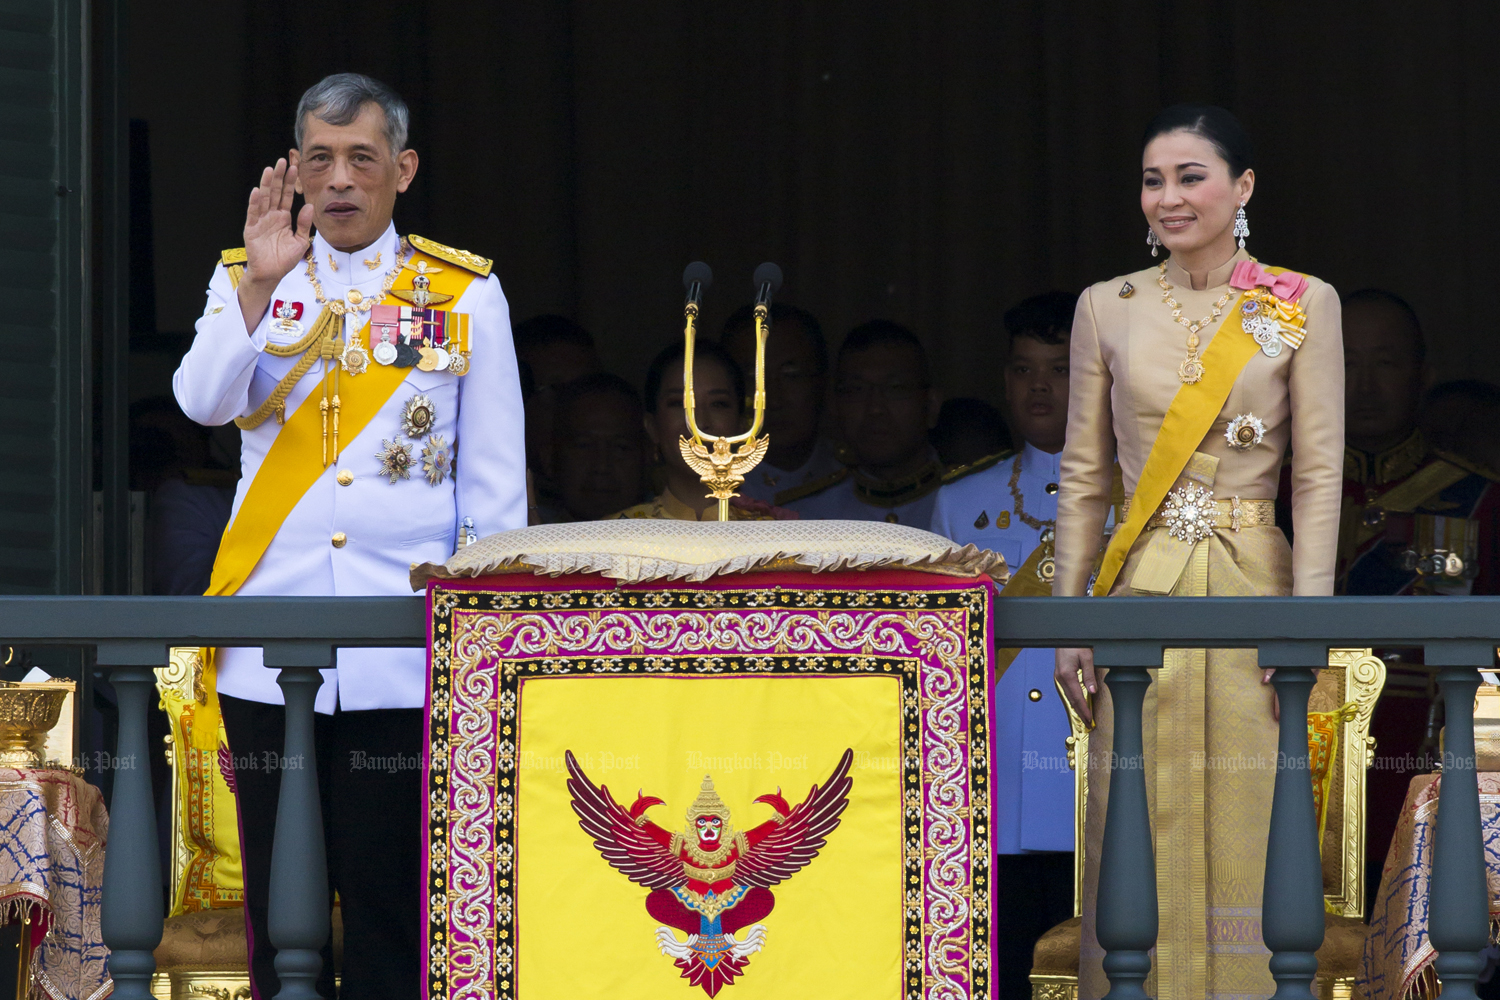 King, Queen to open parliament